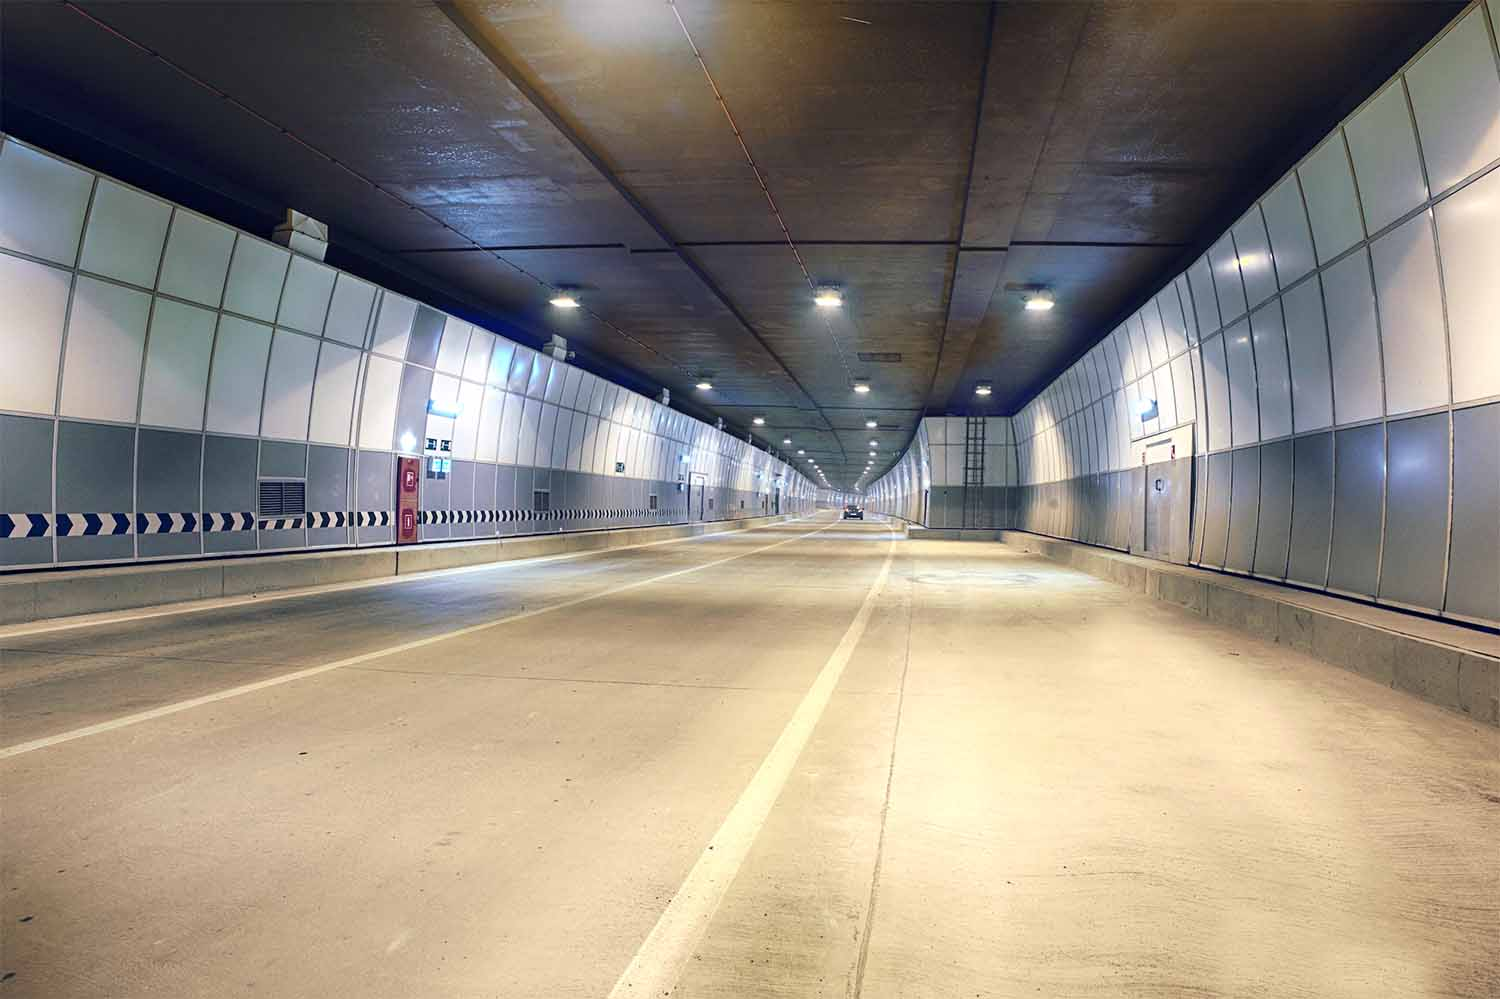 Car driving through two lane tunnel with durable wall panels on the sides